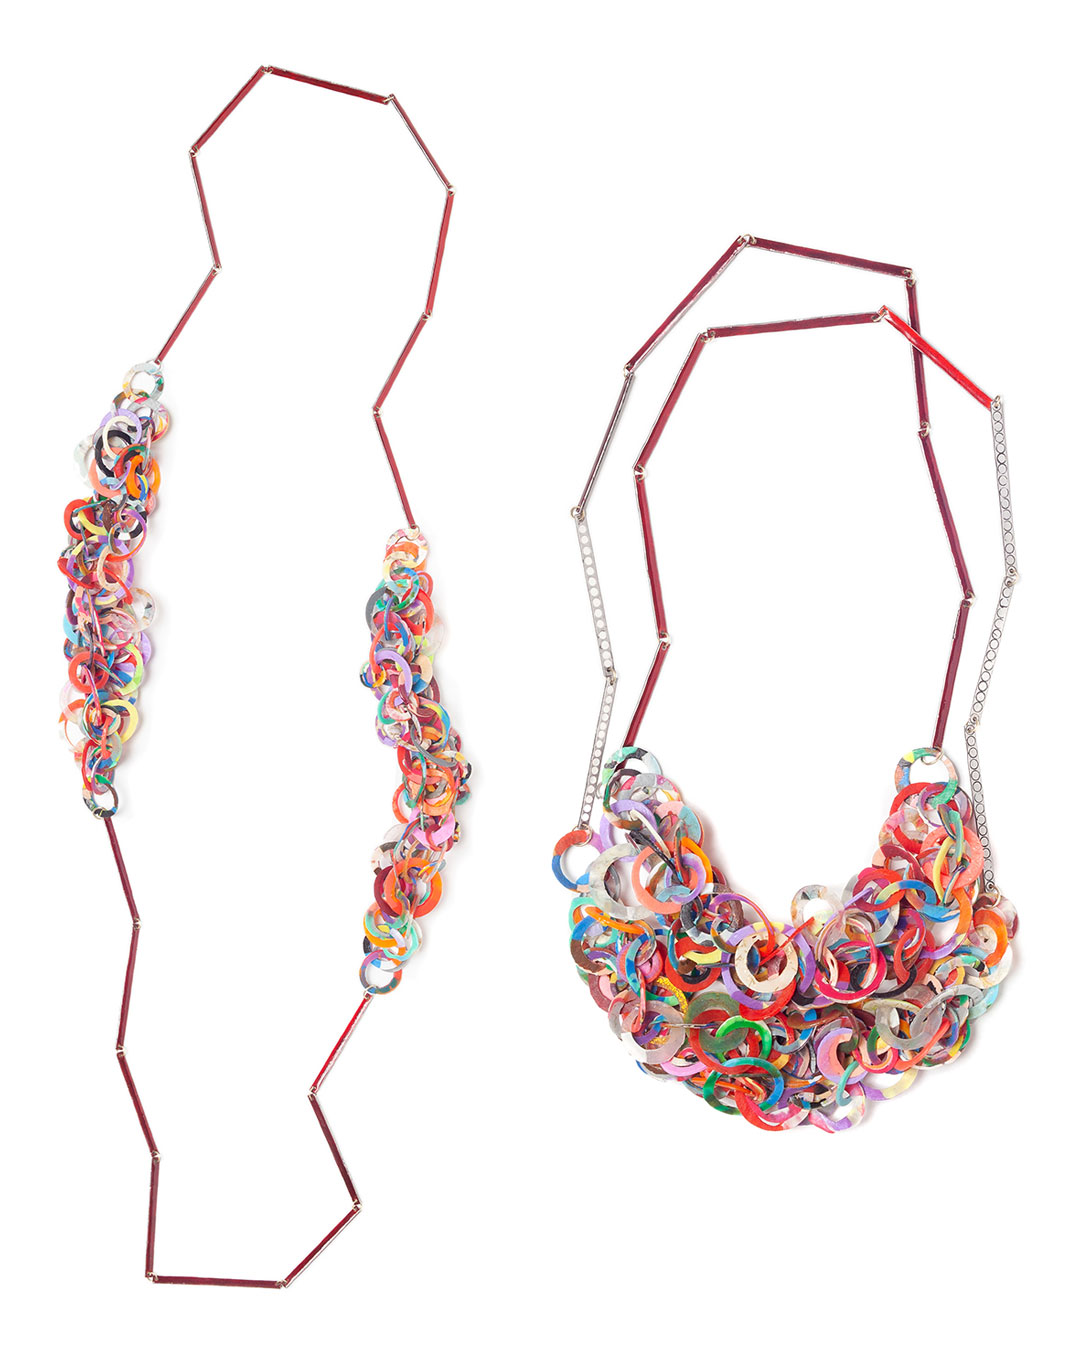 Karola Torkos, untitled, 2020, necklace; etched stainless steel, 14ct gold, Ceramit enamel, recycled plastic, L 1320 mm, €1550